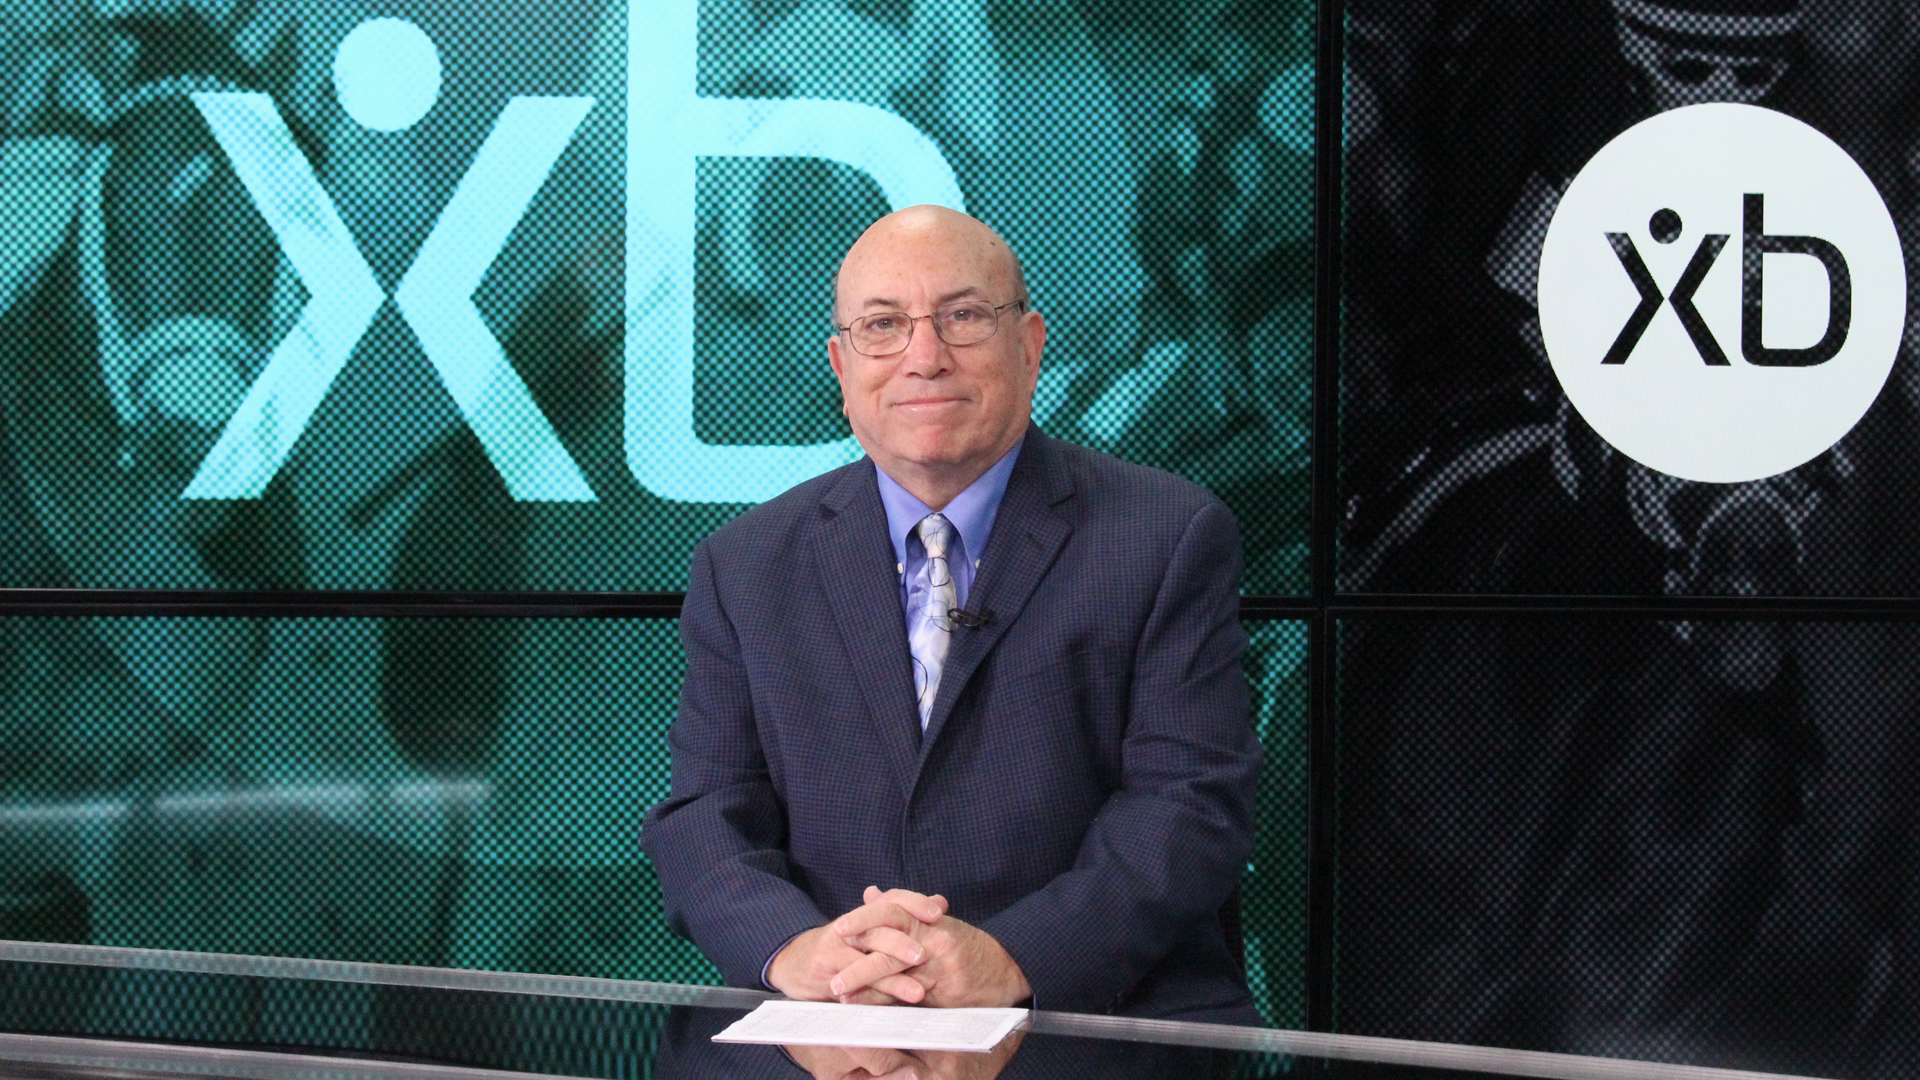 Jeff Siegel's Blog: Churchill Downs (Oaks and Derby Day) Analysis and Wagering Strategies for Friday/Saturday, April 30/May 1, 2021